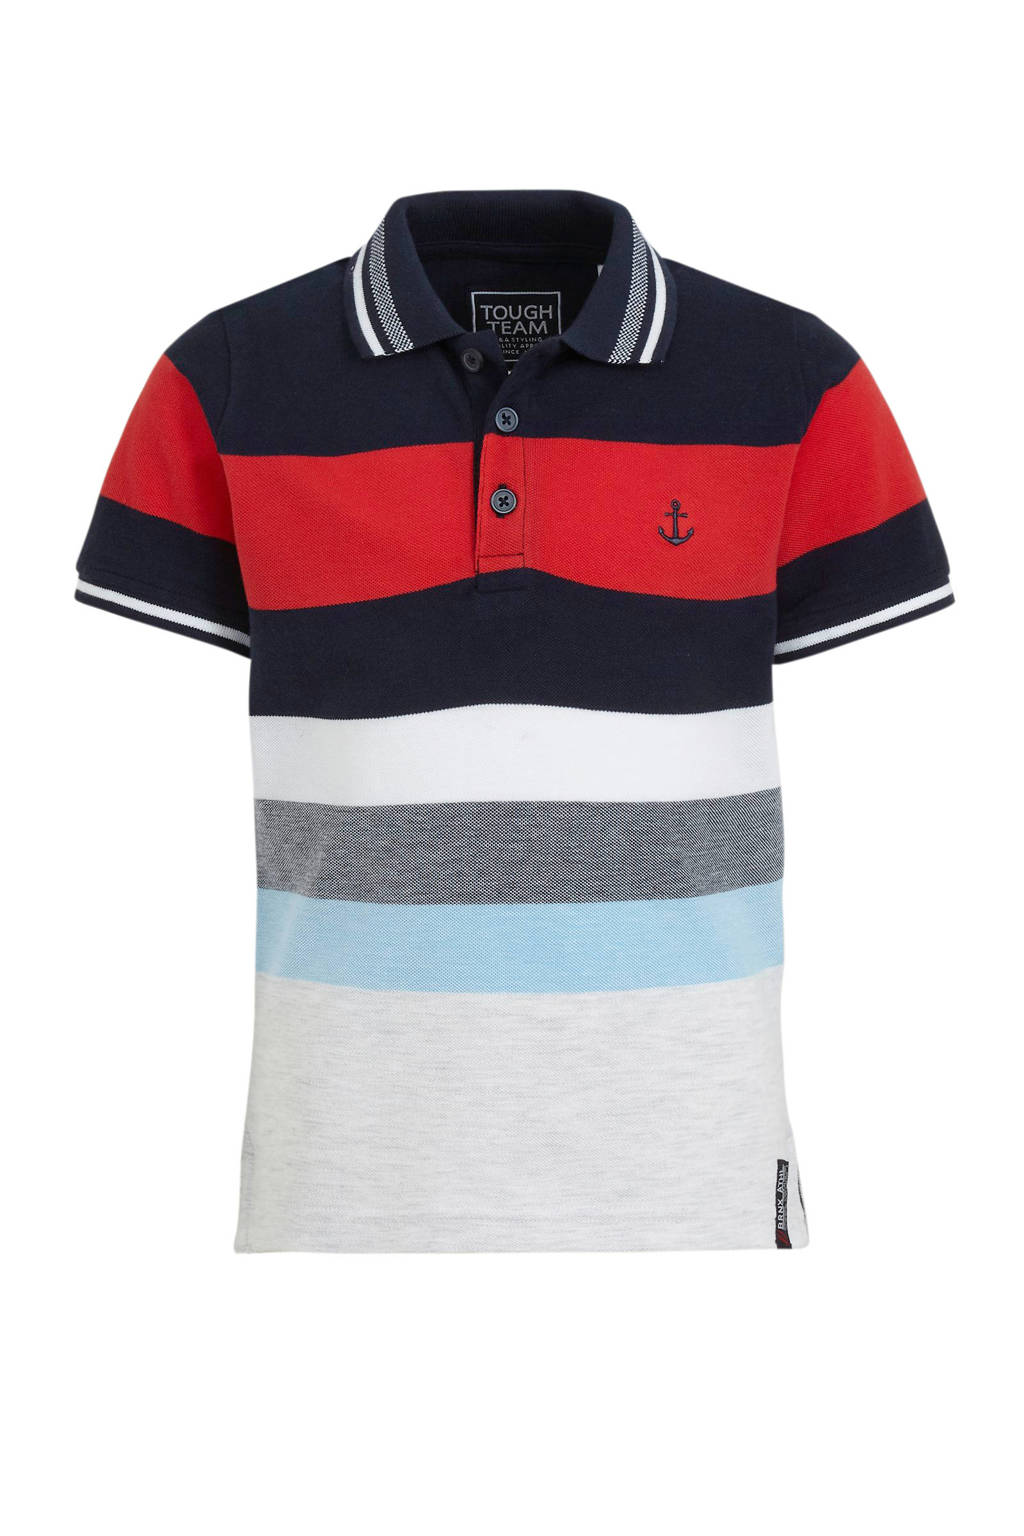 C&A Palomino polo rood/blauw/wit, Rood/blauw/wit